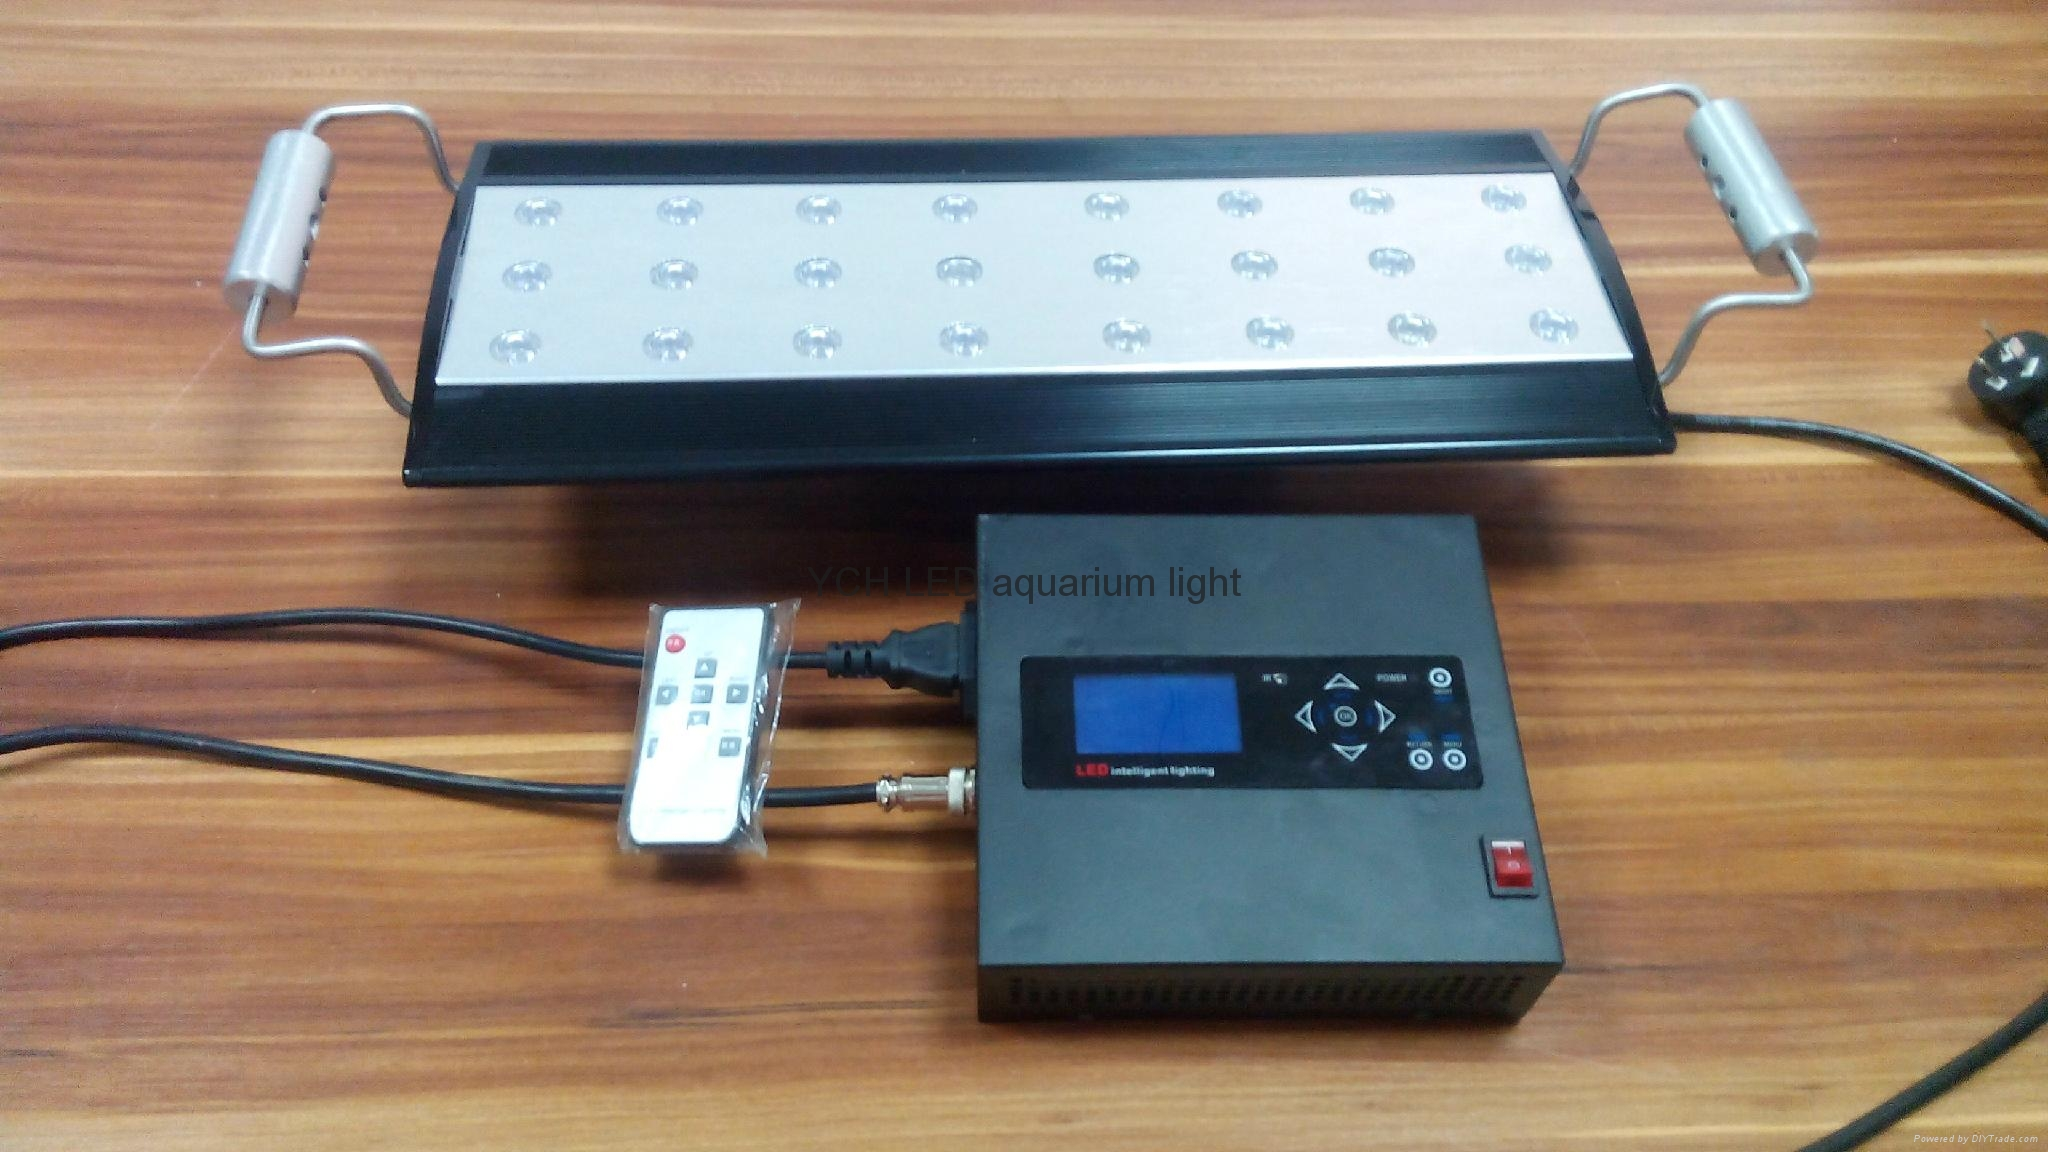 72W Flying fish dimmable led aquarium light 1